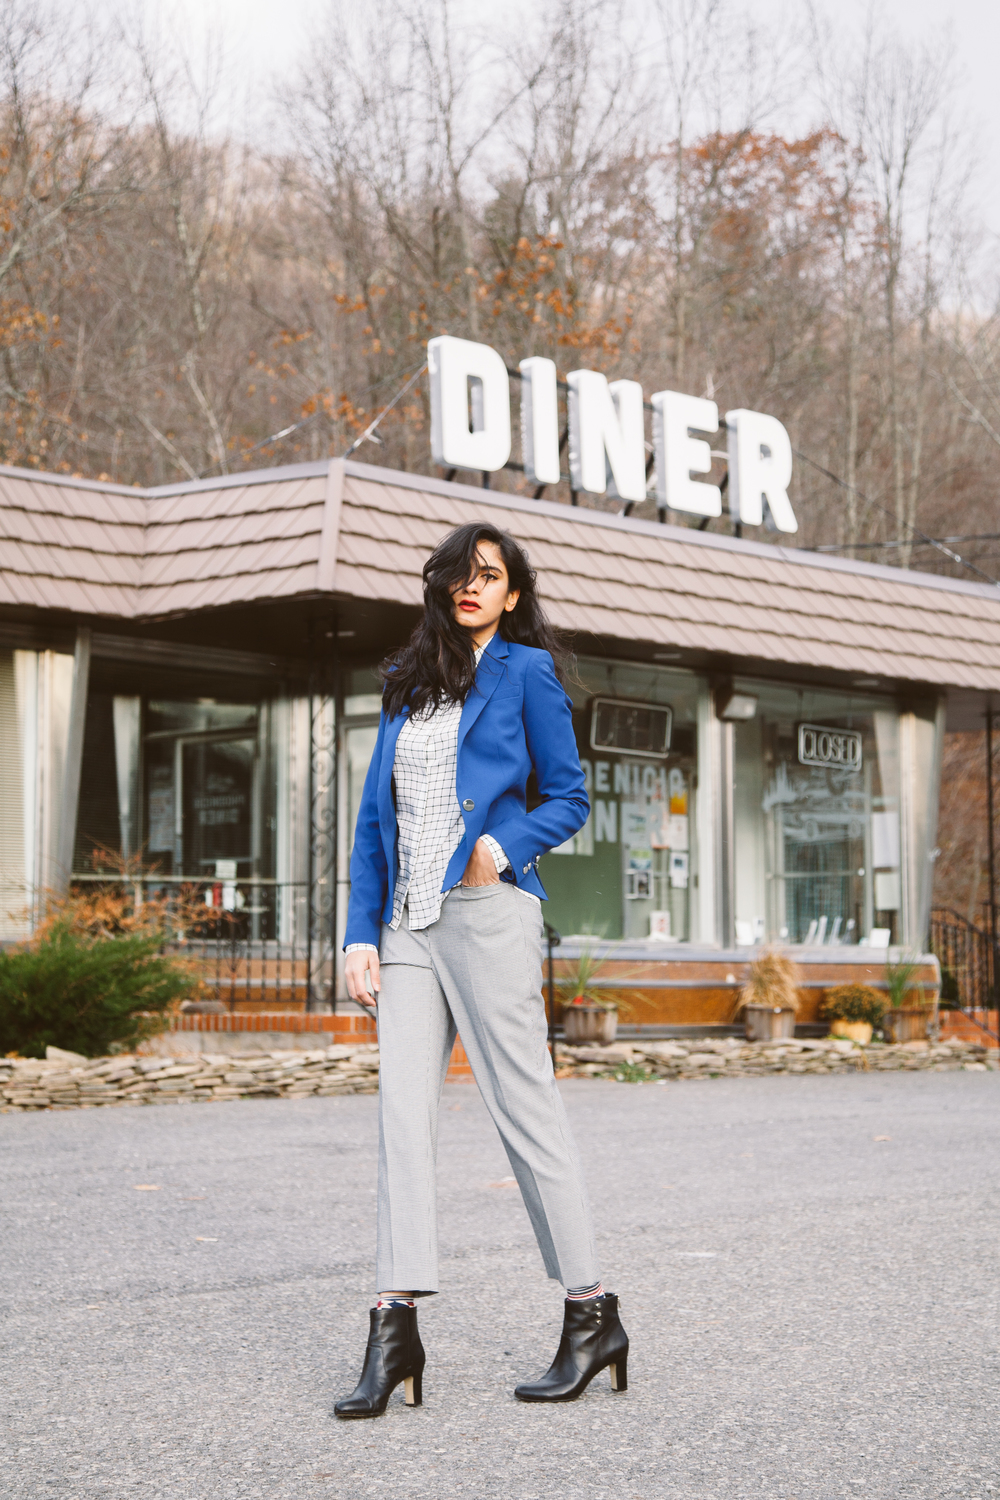 Anne Klein outfit at the Phoenicia Diner